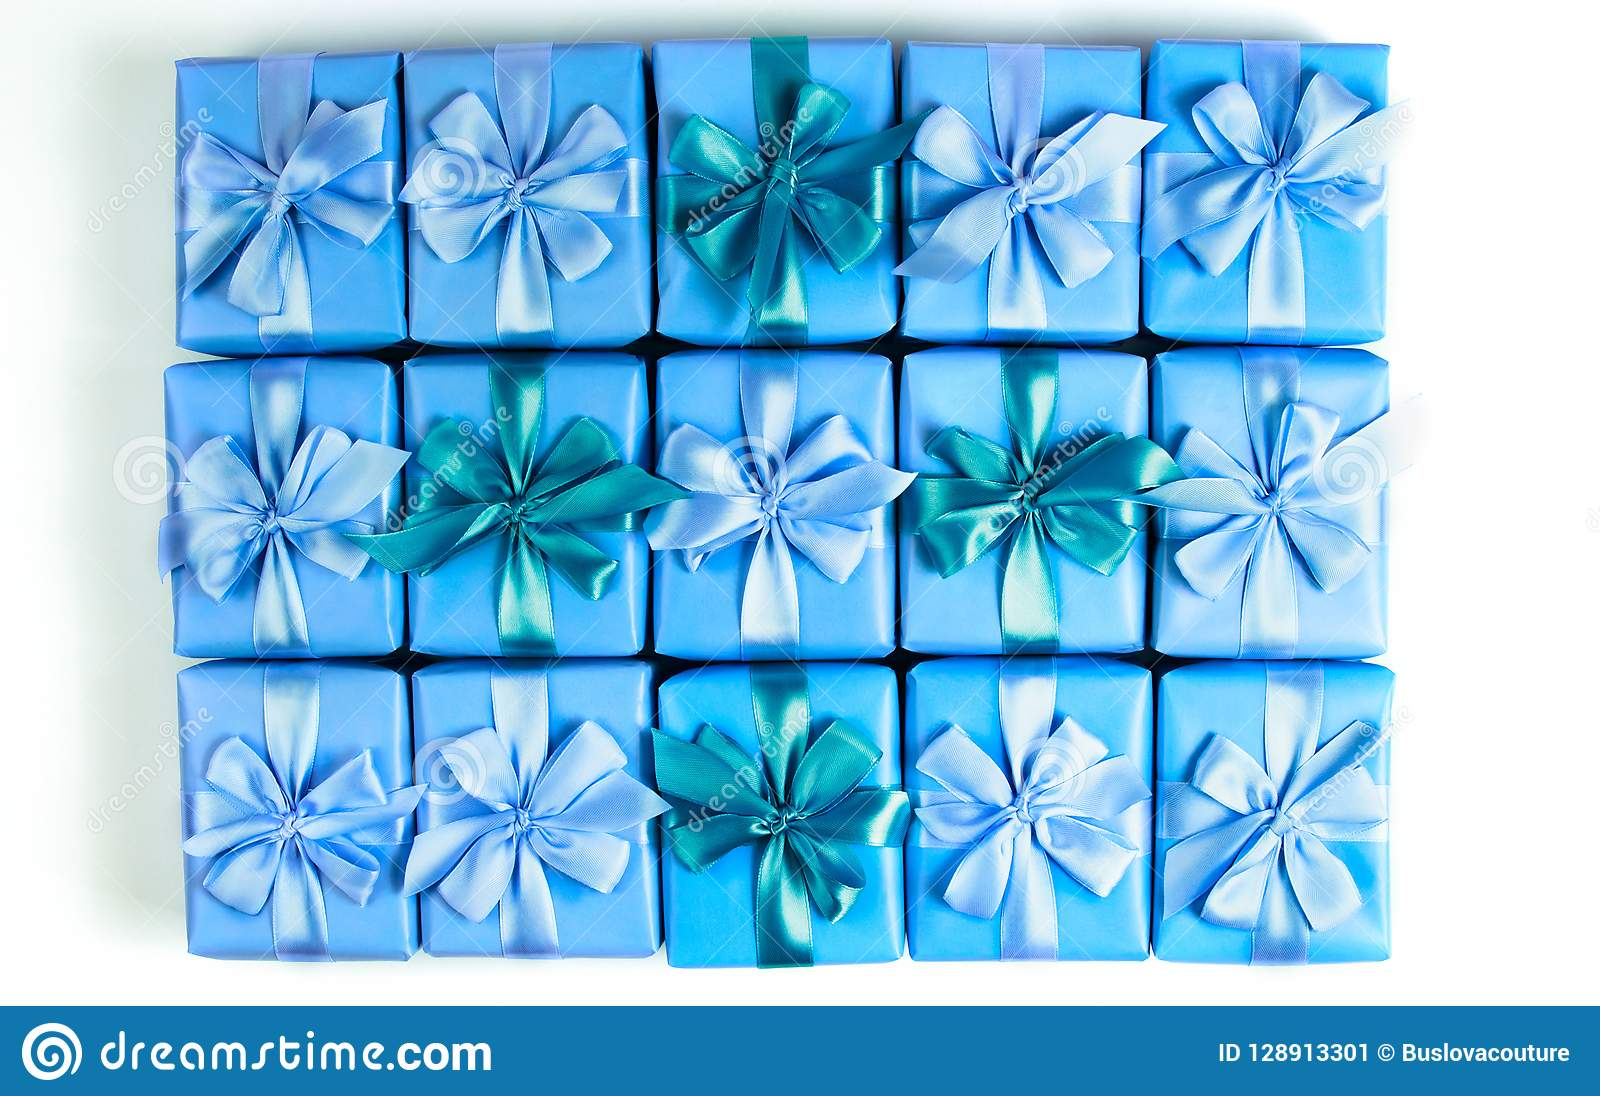 Rows of boxes with gifts decoration ribbon satin bow blue A top view of Flat lay